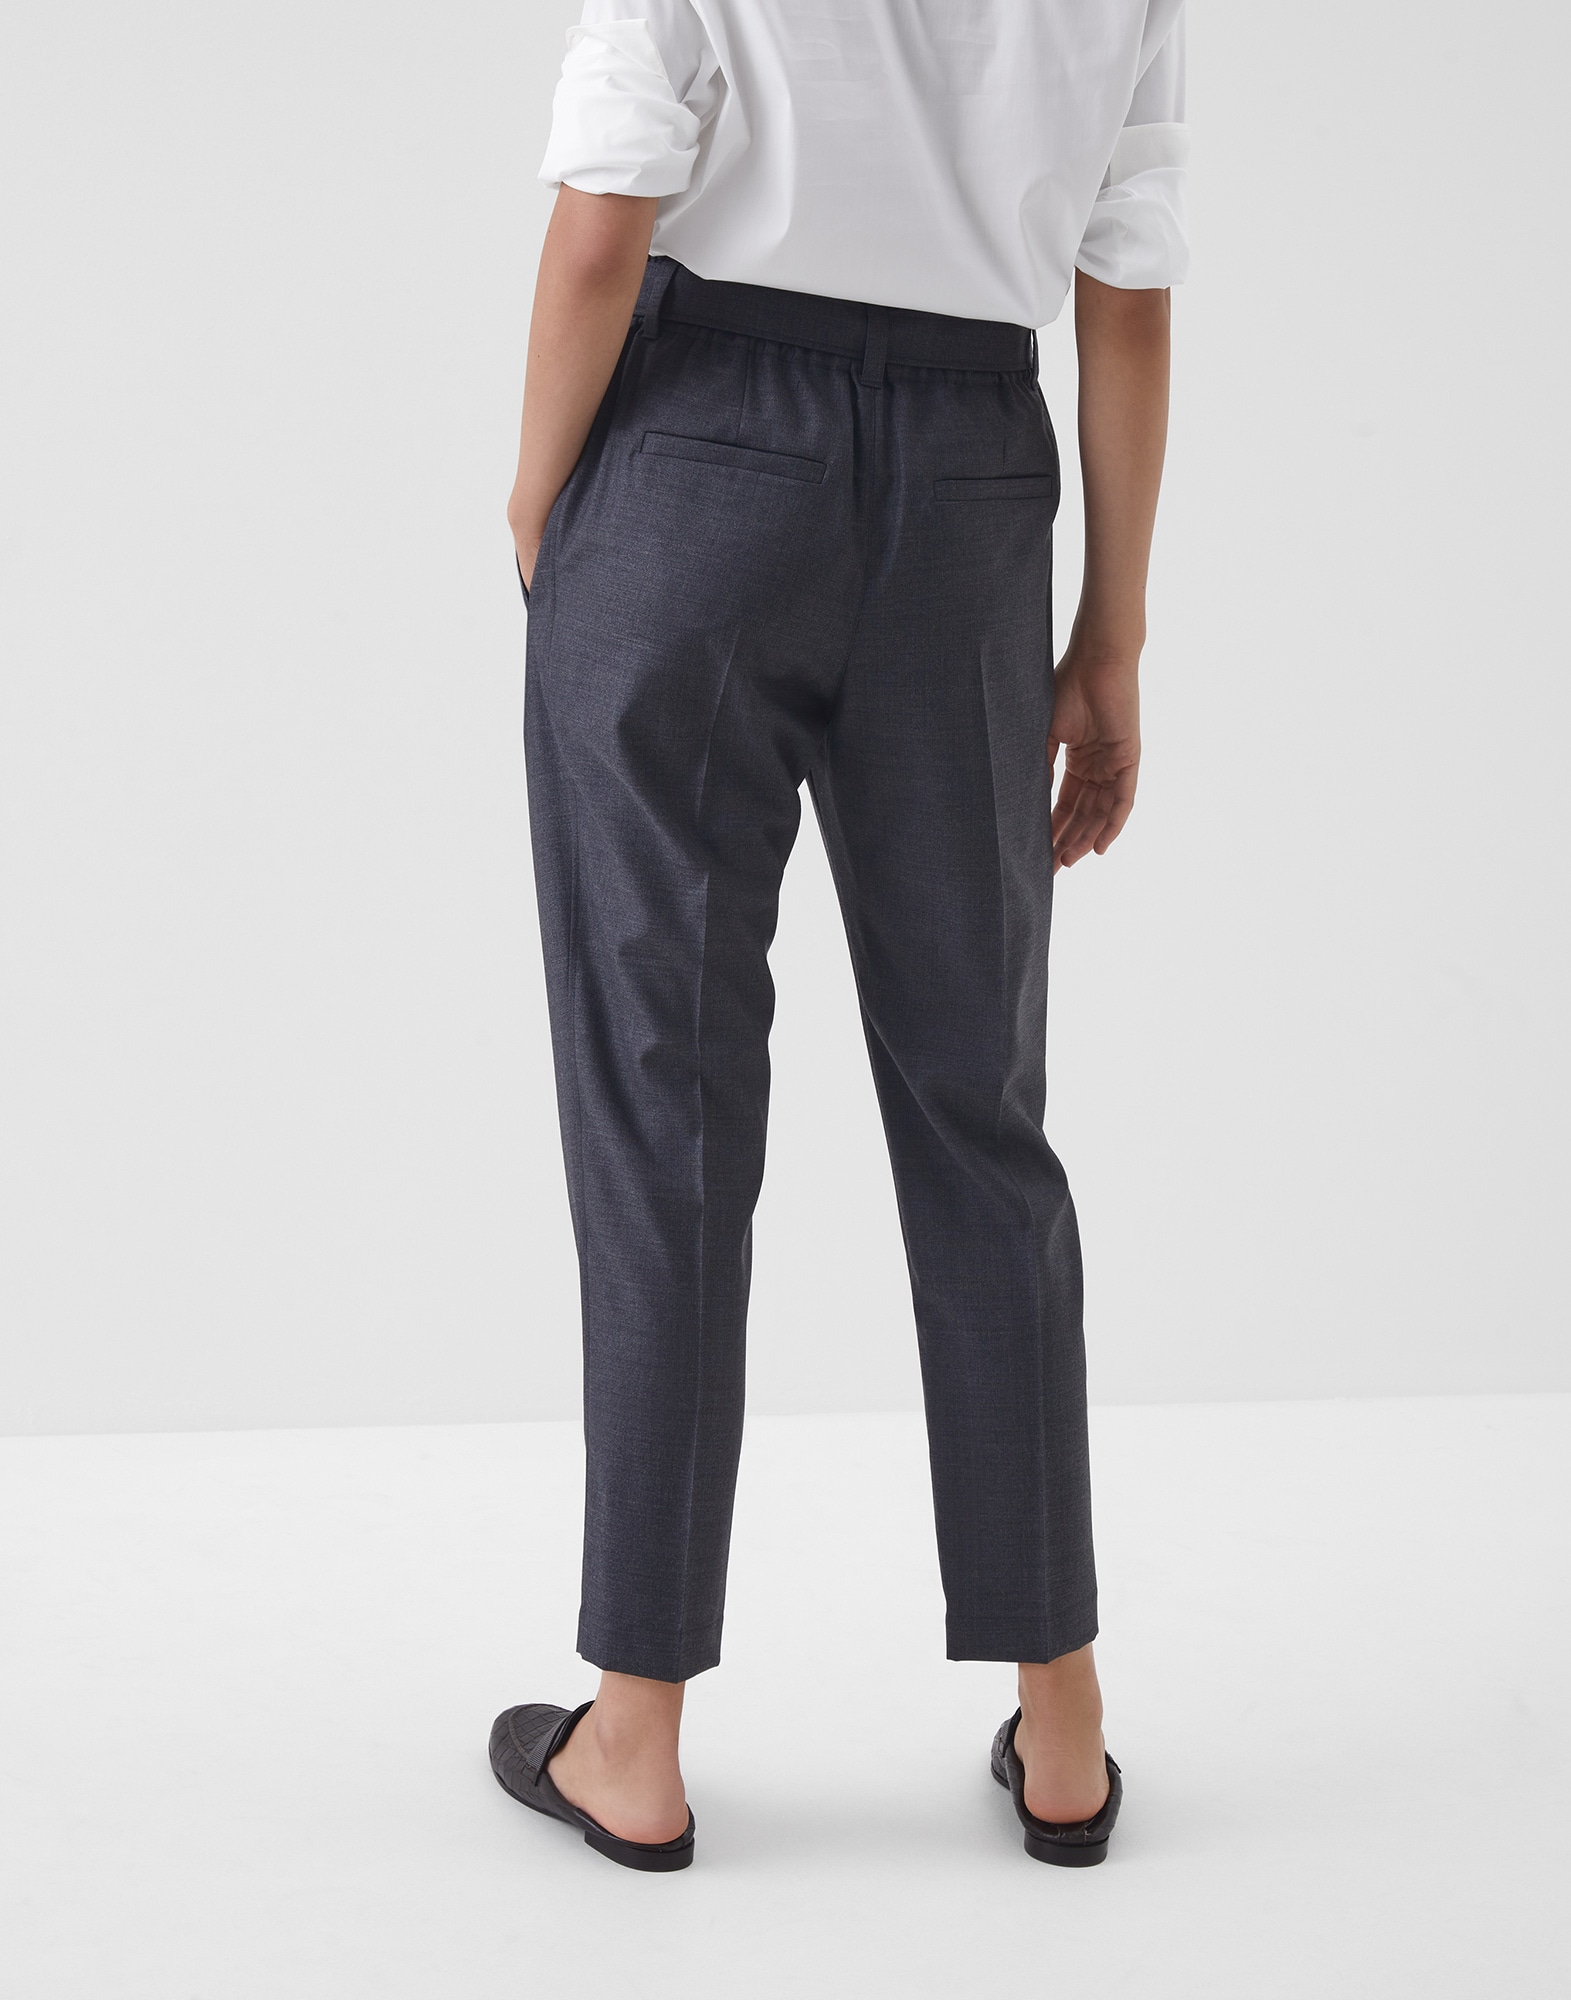 Trousers Lignite Woman 1 - Brunello Cucinelli